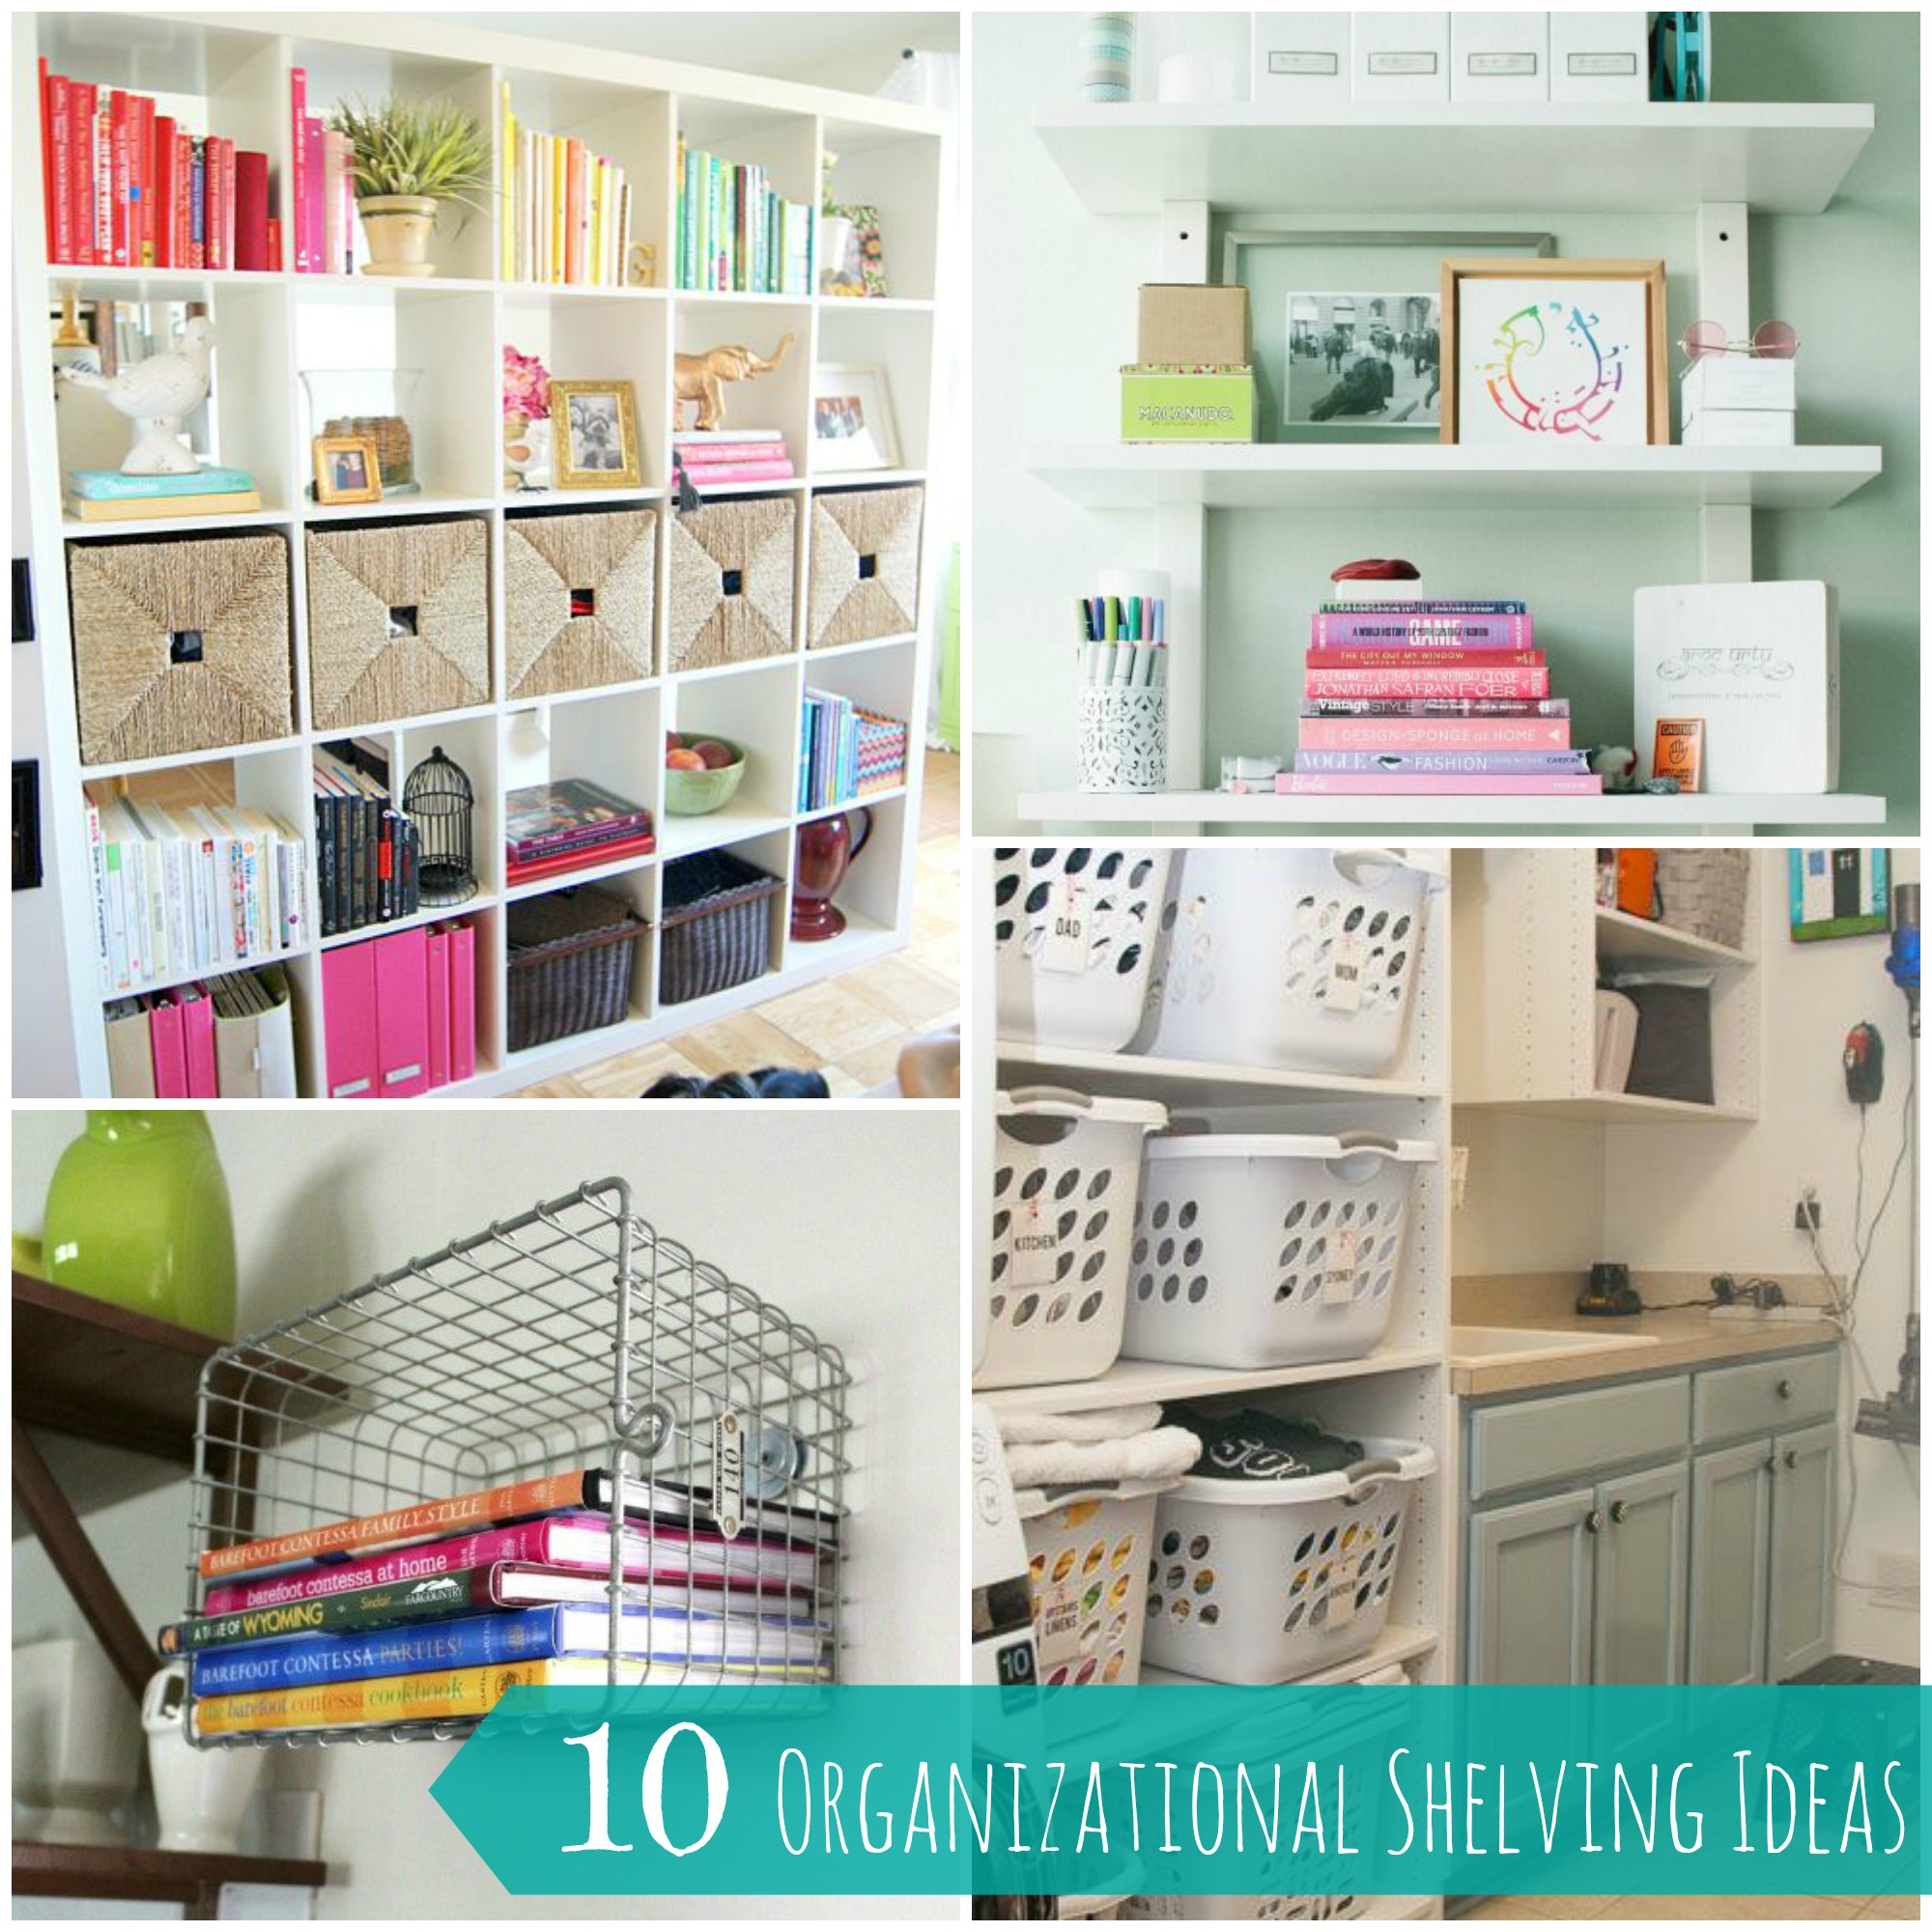 easy-organization-ideas-shelving-tips-for-your-home-